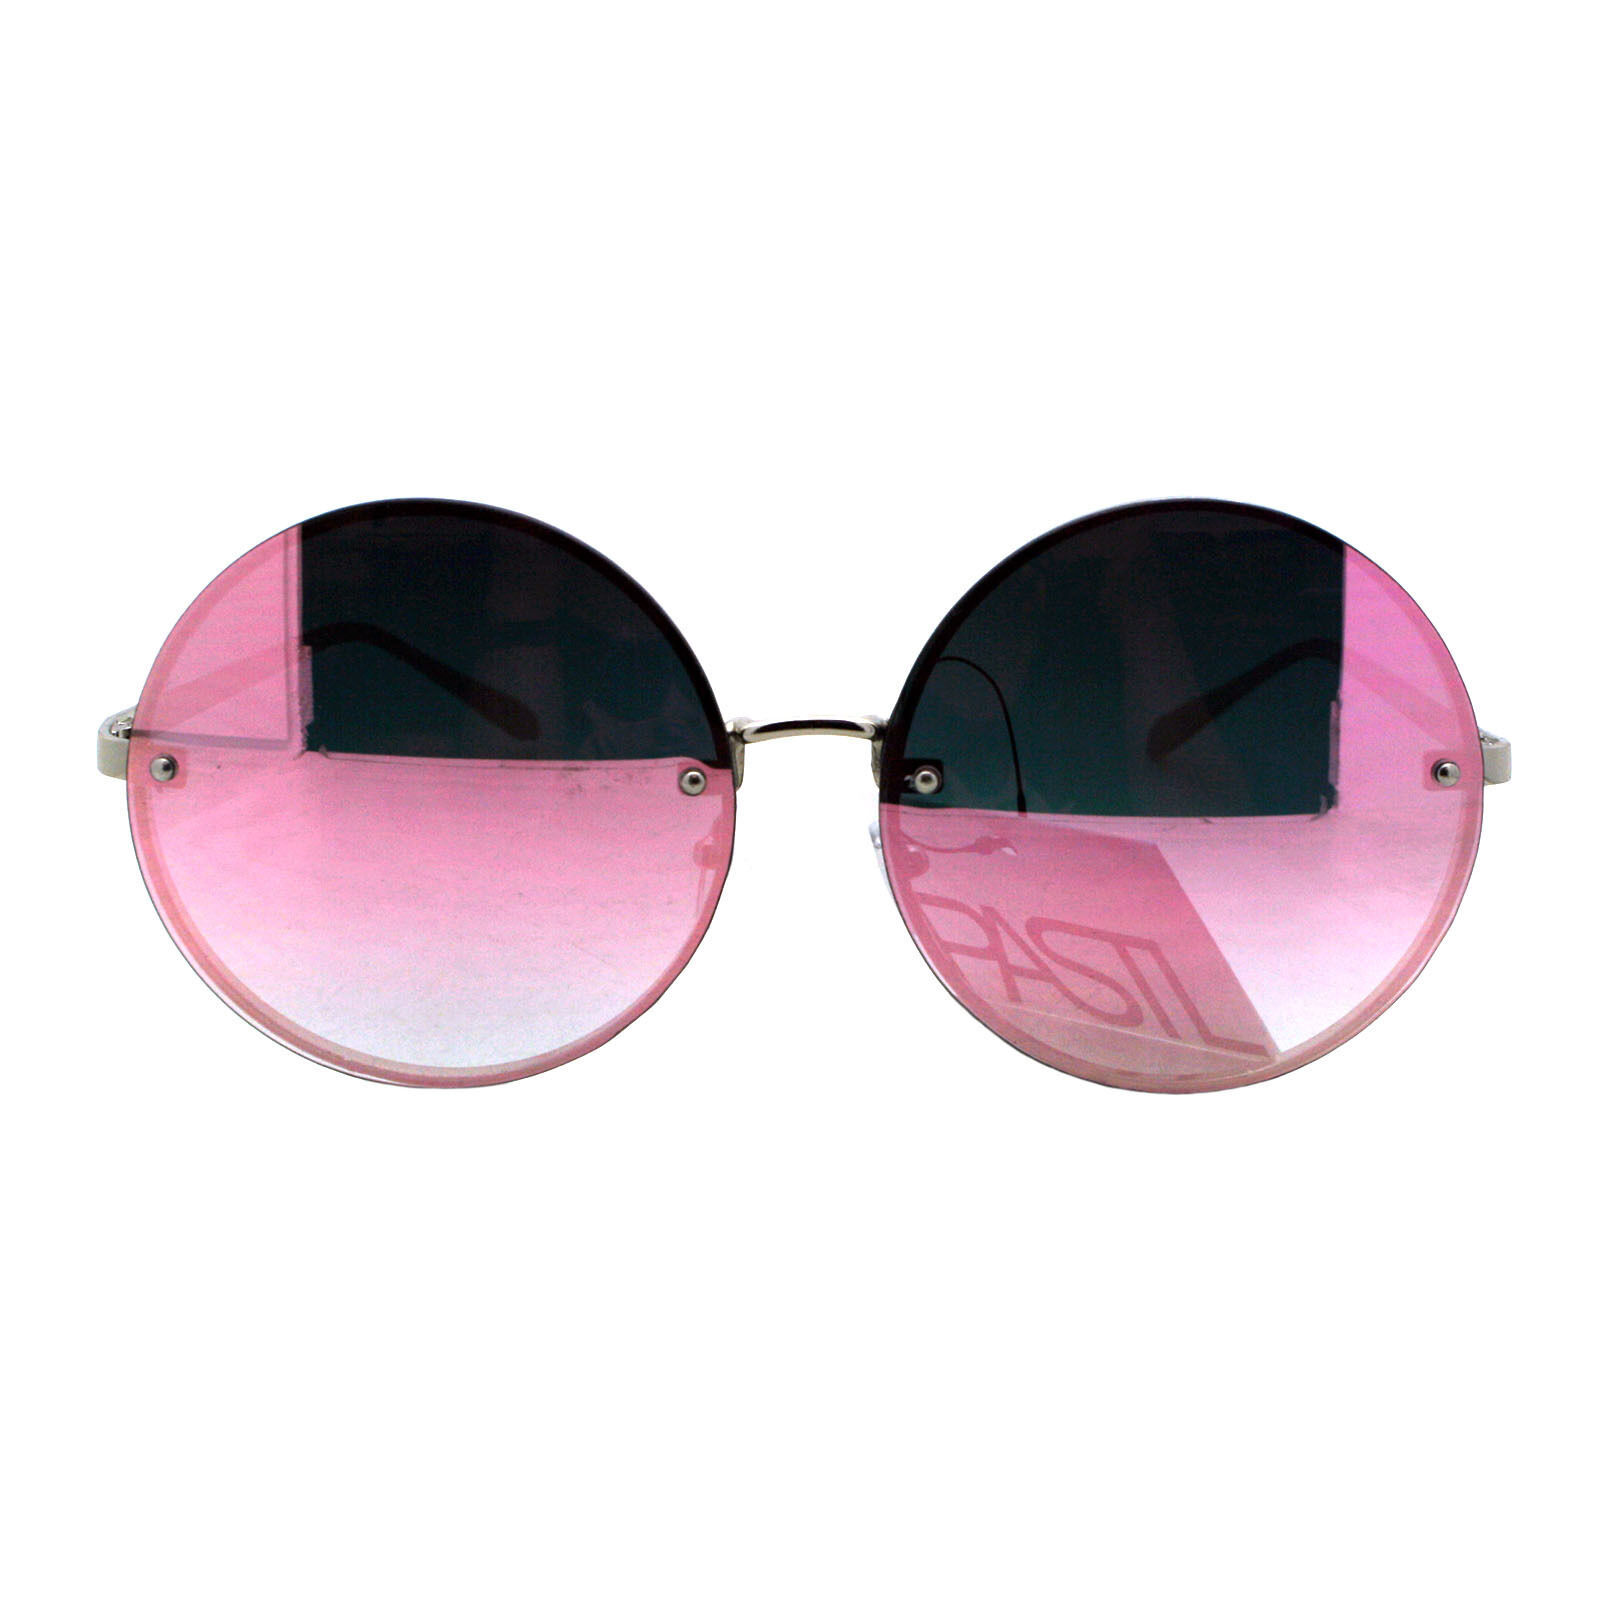 PASTL Super Oversized Round Sunglasses Womens Pink Mirror Lens UV 400 image 13